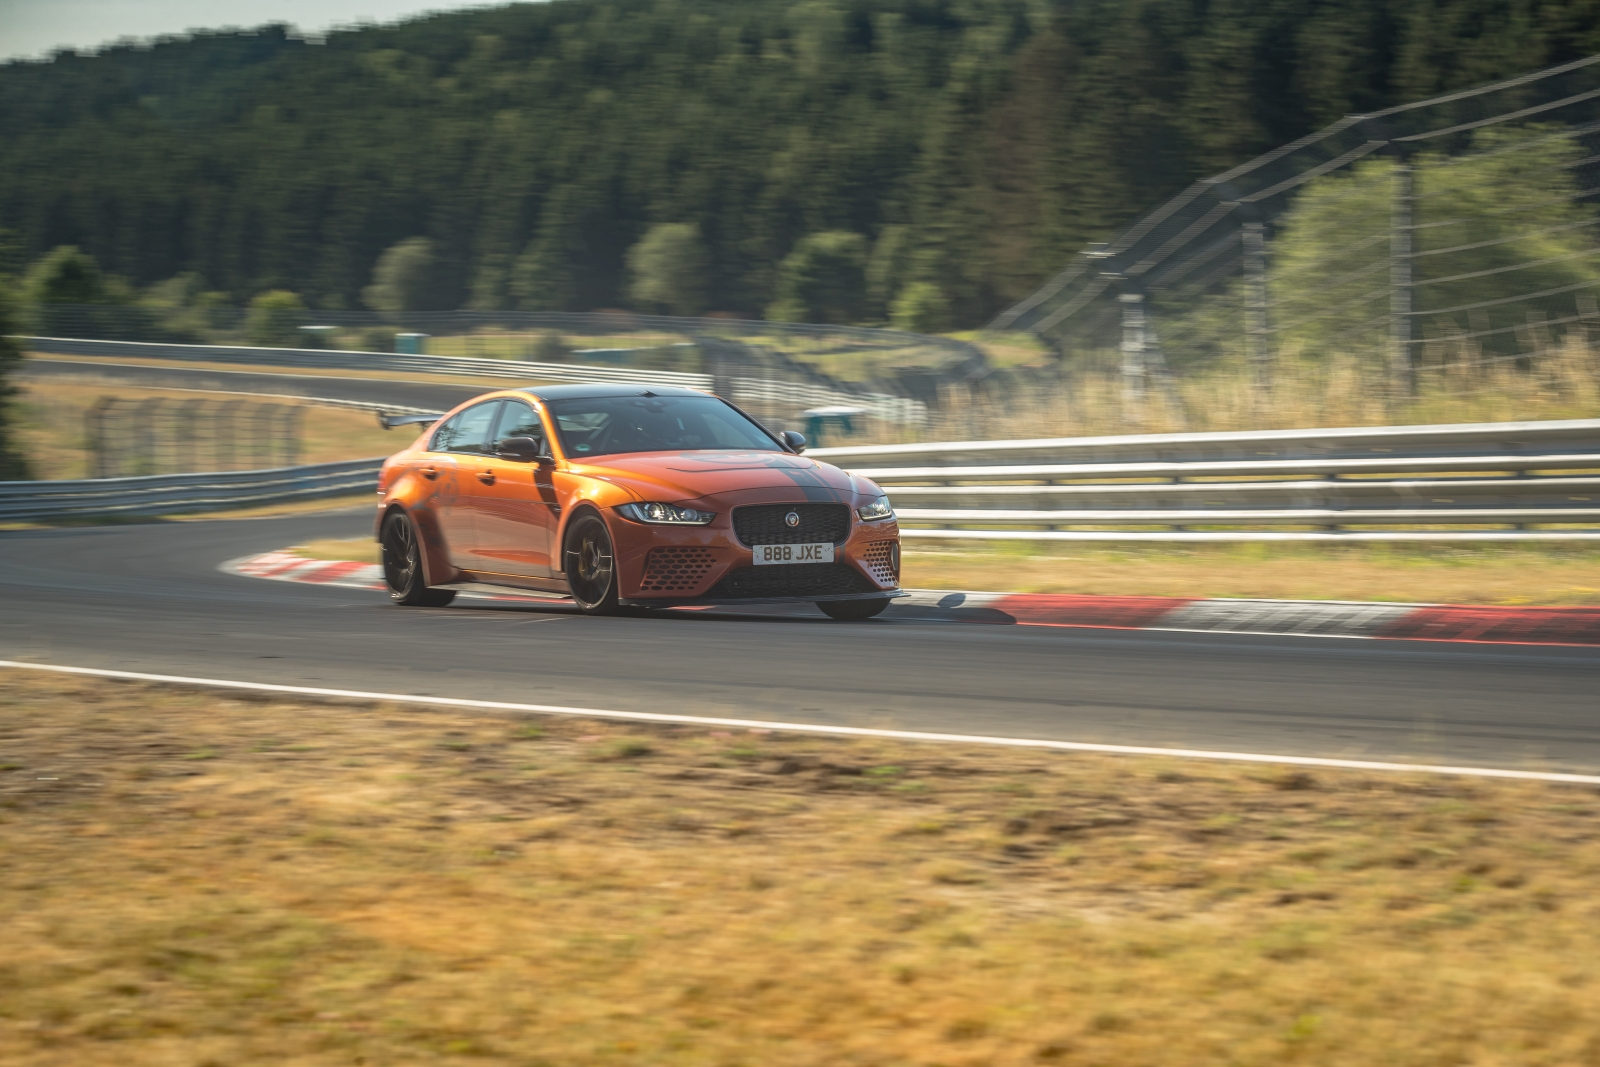 J_Project8_19MY_Nurburgring_Record_2019_240719_05